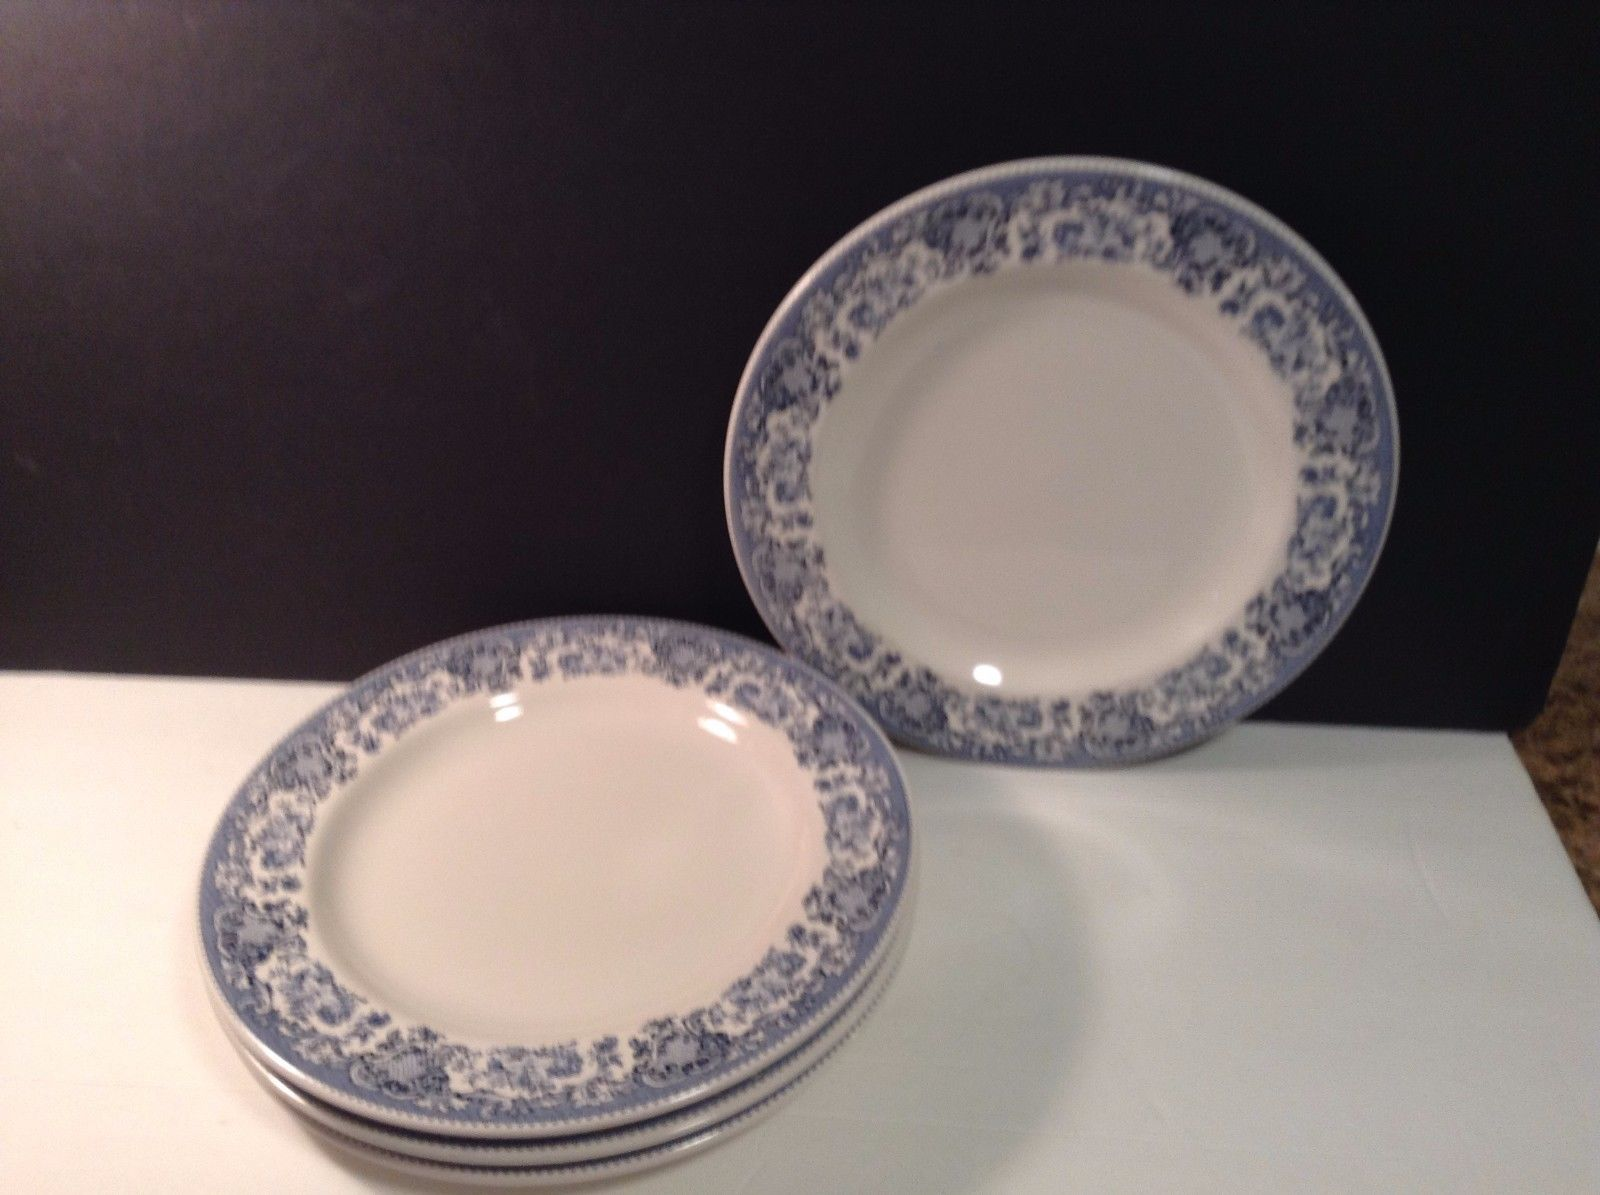 MSE Blue Floral Rim Dinner Plate Set of 4 Lovely Martha Stewart Everyday & MSE Blue Floral Rim Dinner Plate Set of 4 and similar items